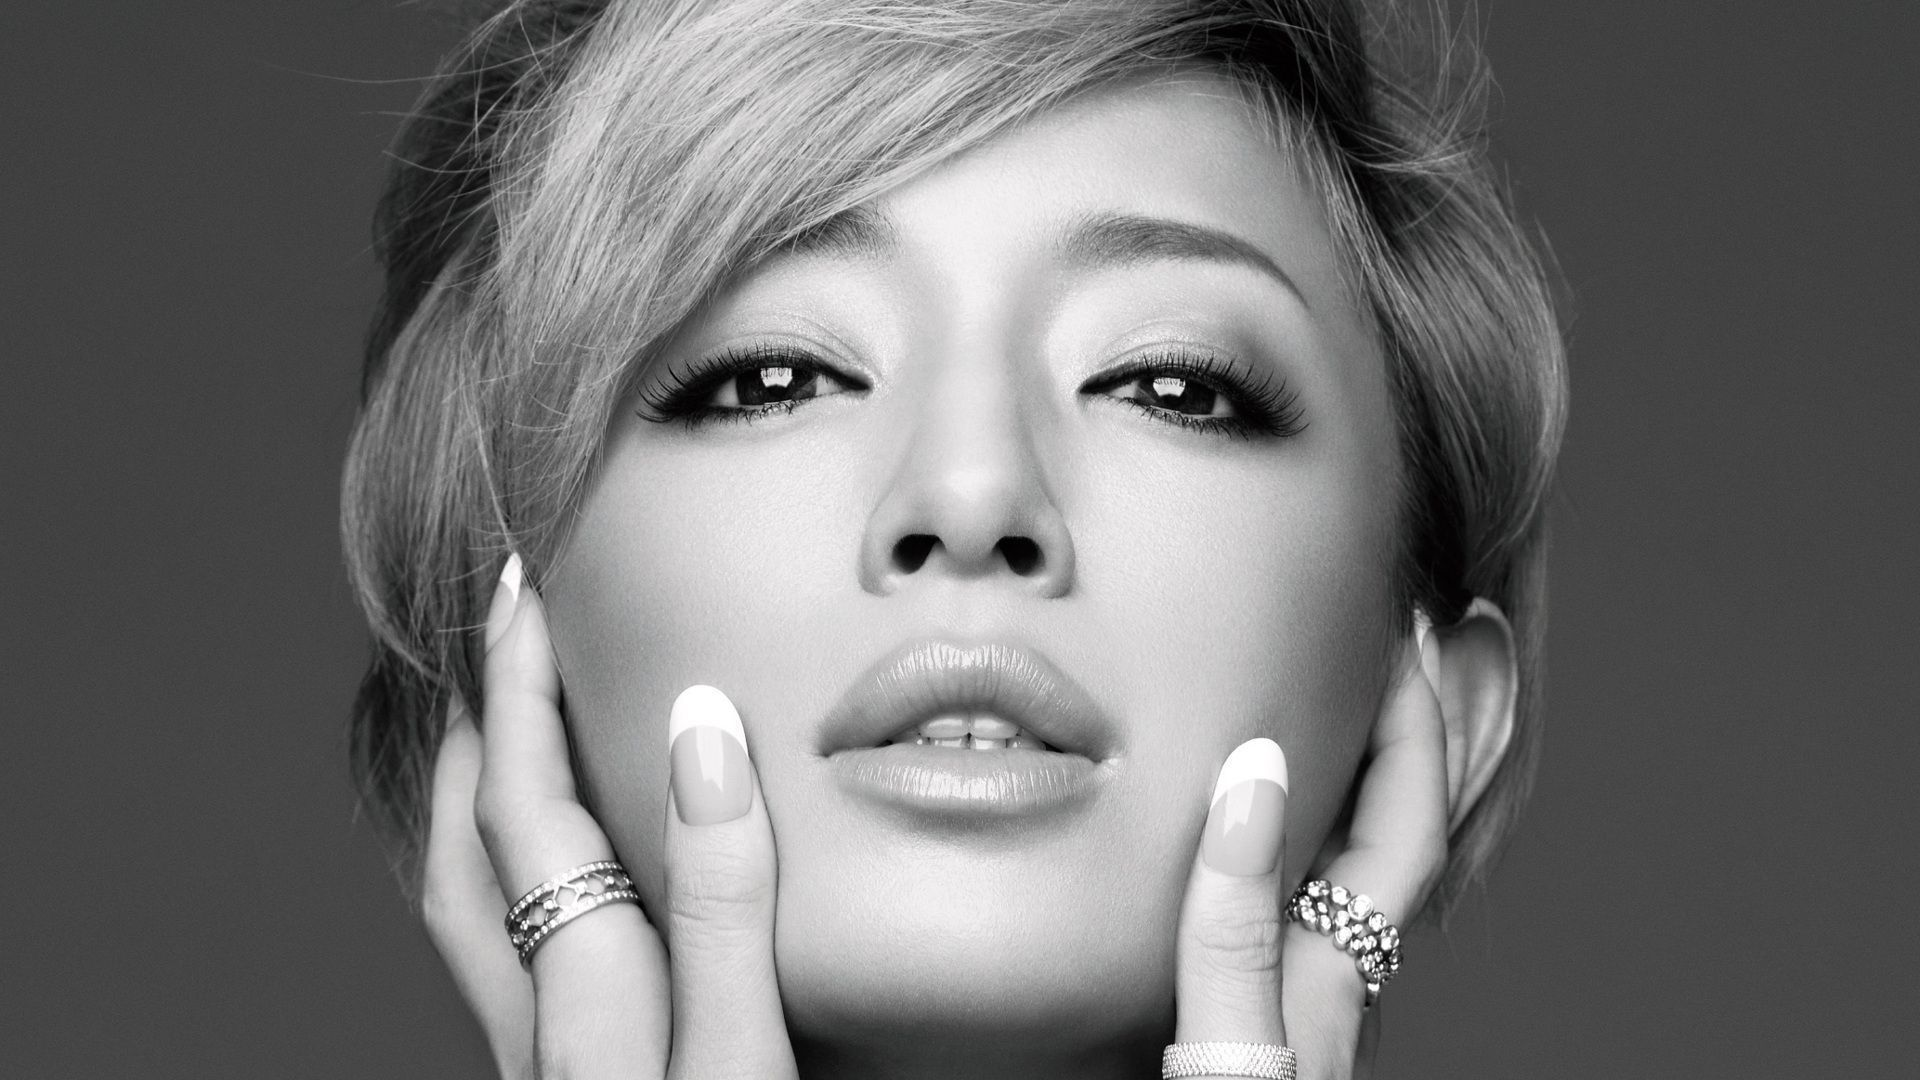 Ayumi Hamasaki High Quality Wallpapers